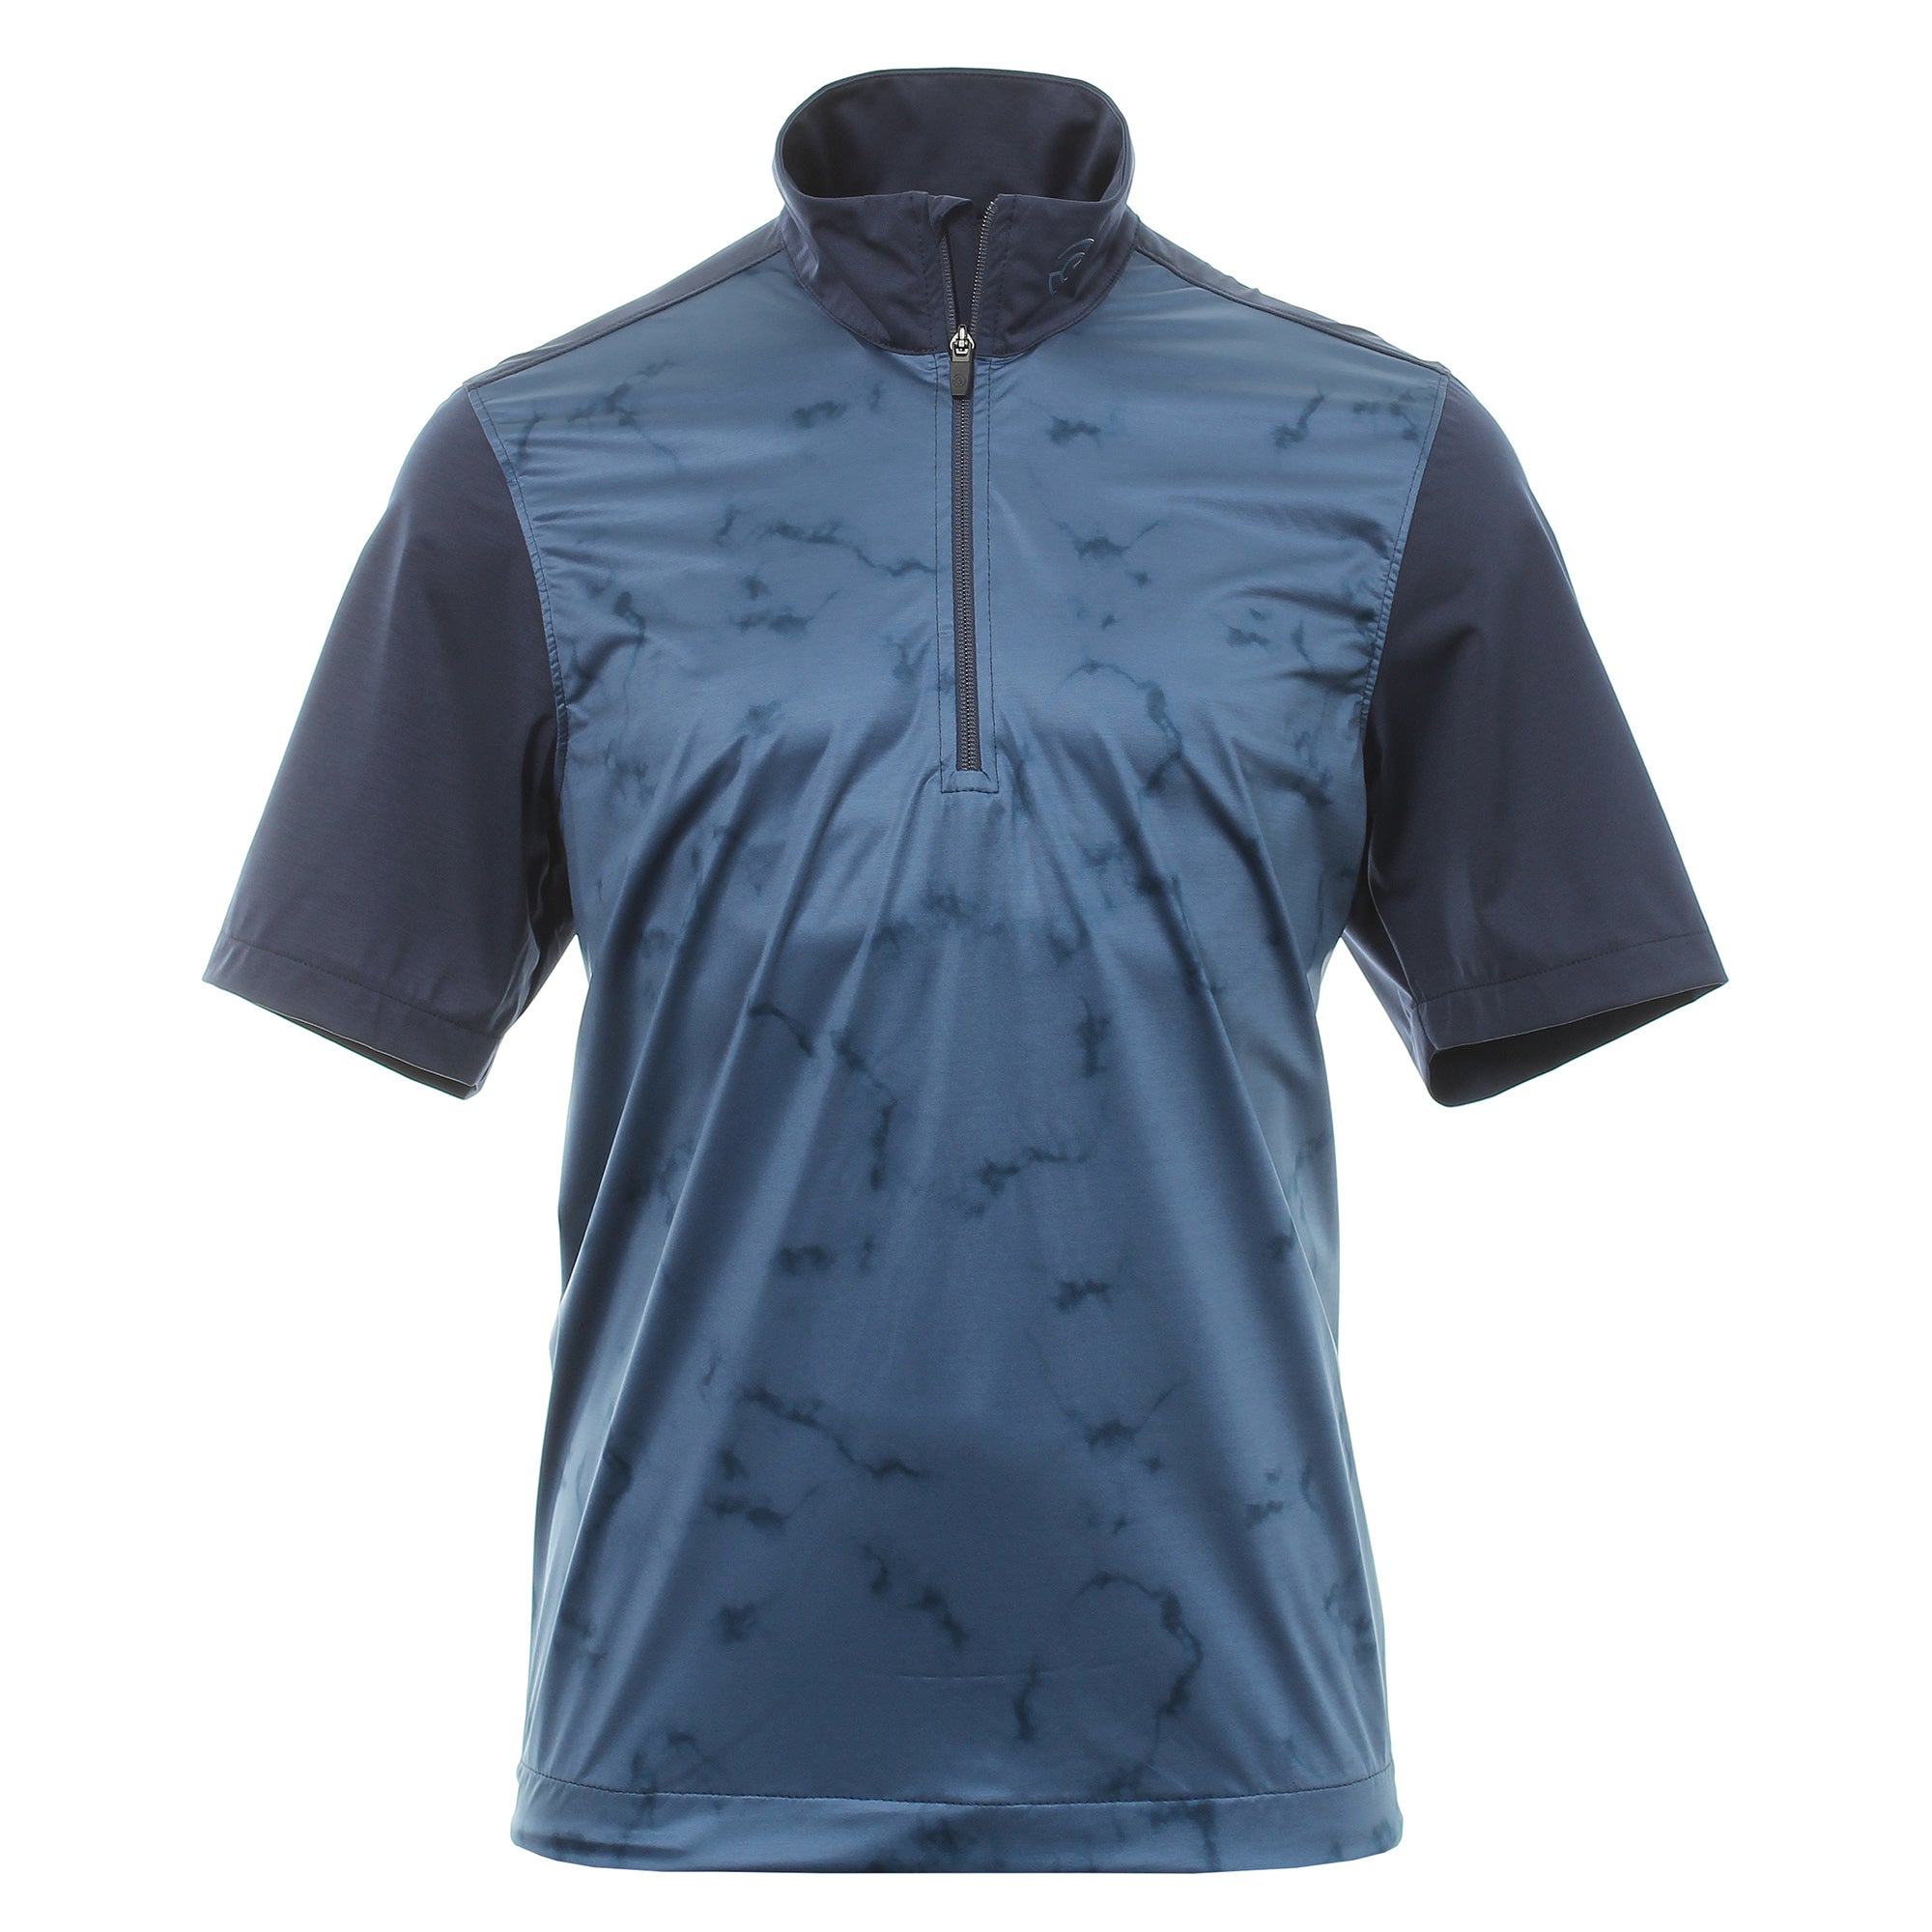 Galvin Green Link Interface-1 Golf Jacket